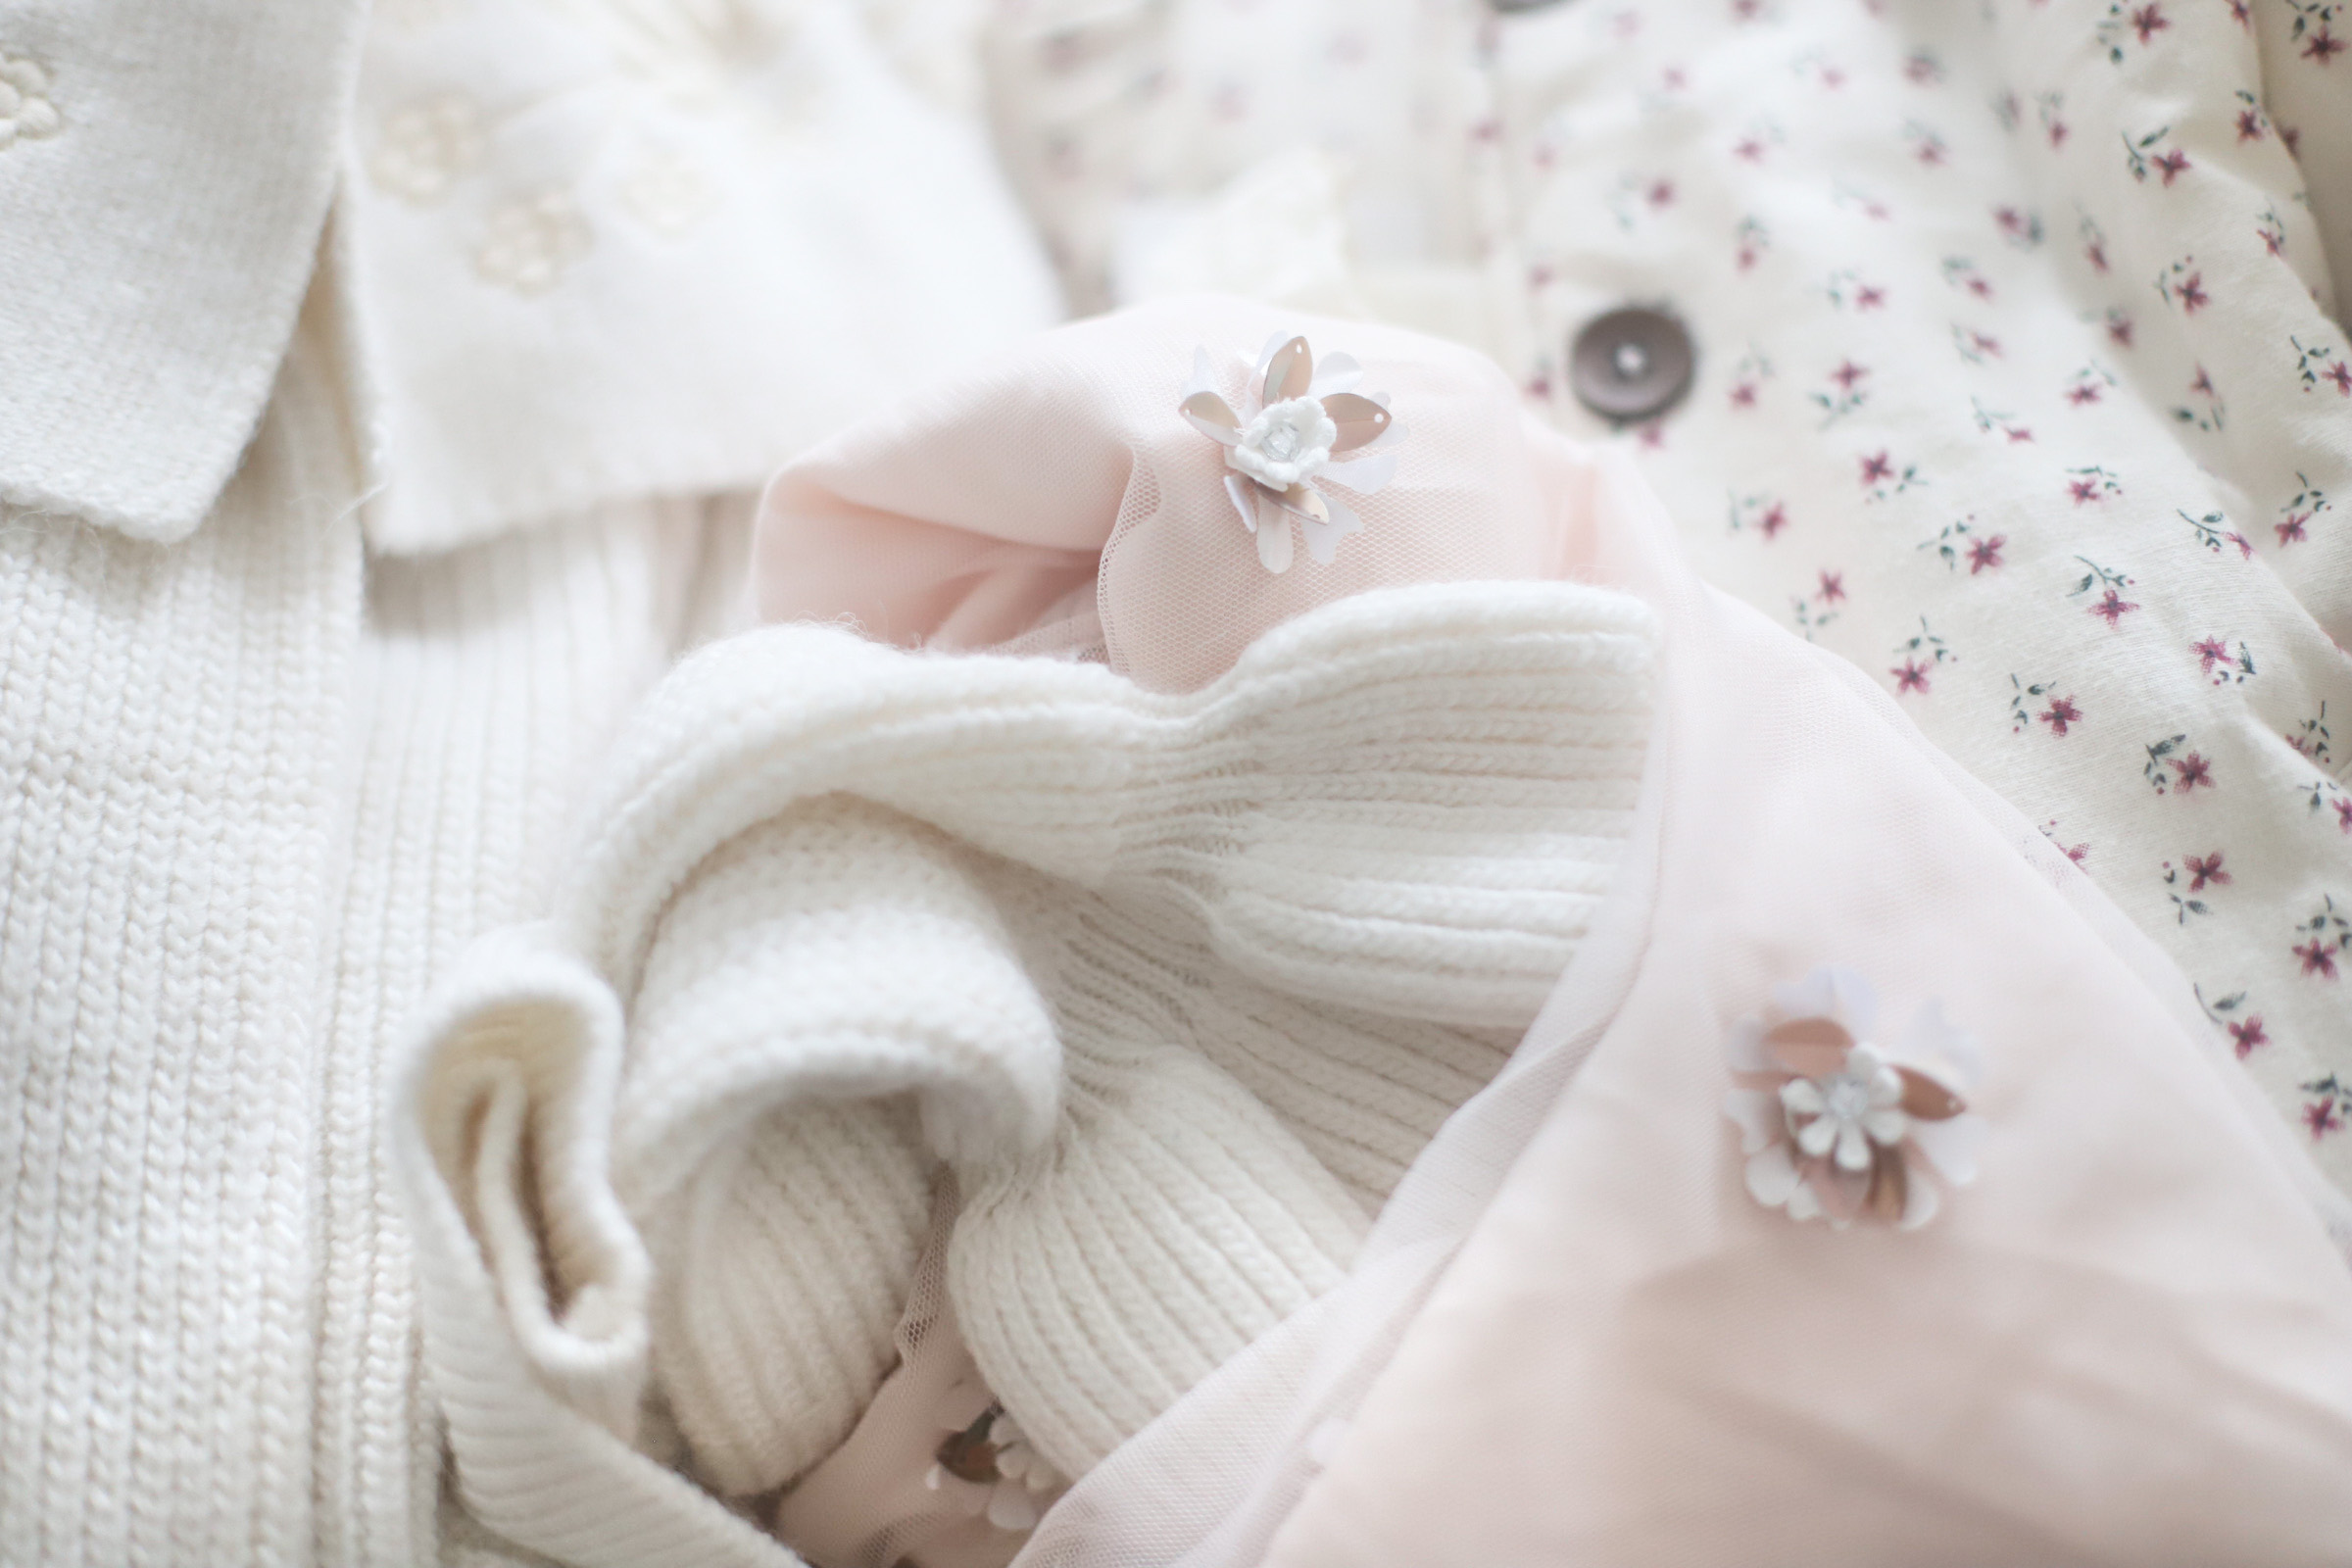 Little Love Notes + a What We are Wearing for Our Holiday Family Photo Outfits | @glitterinclexi | GLITTERINC.COM